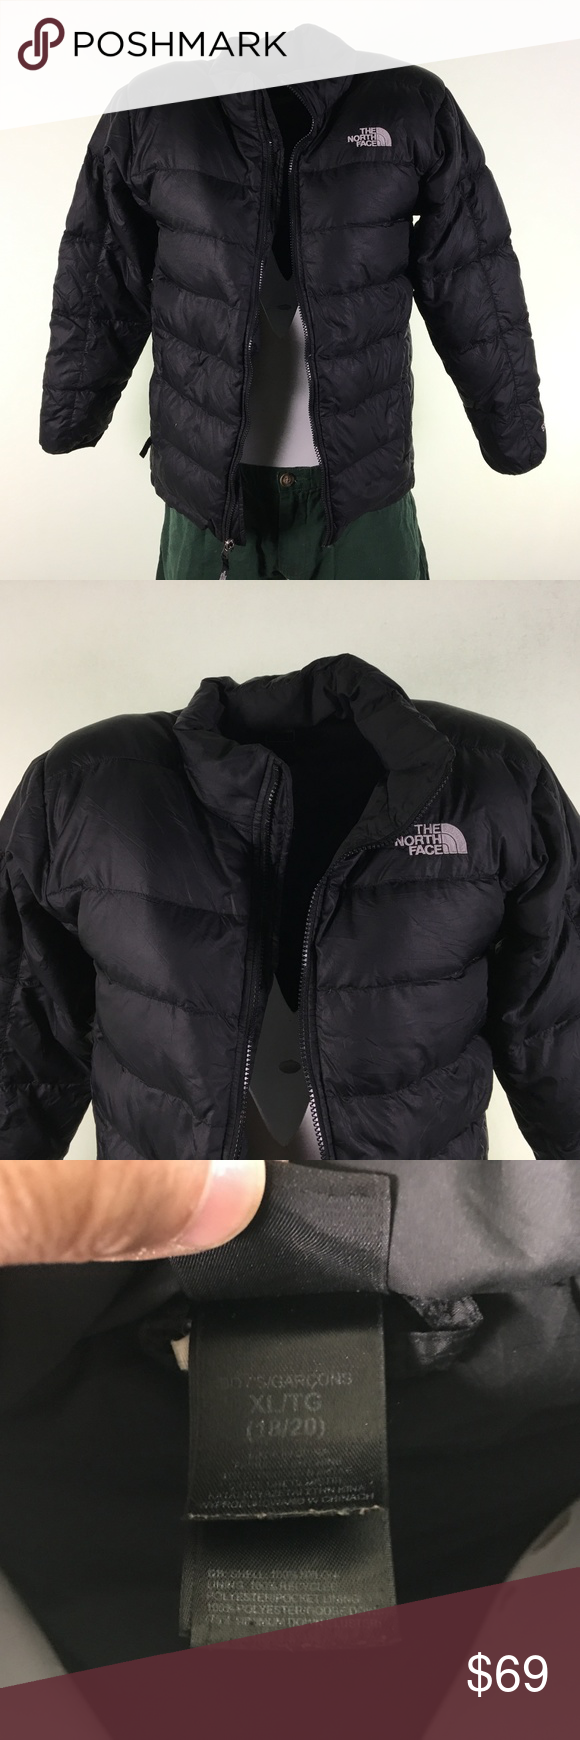 North Face Puffer Jacket Dr00646 Sz Xl North Face Puffer Jacket The North Face Jackets [ 1740 x 580 Pixel ]